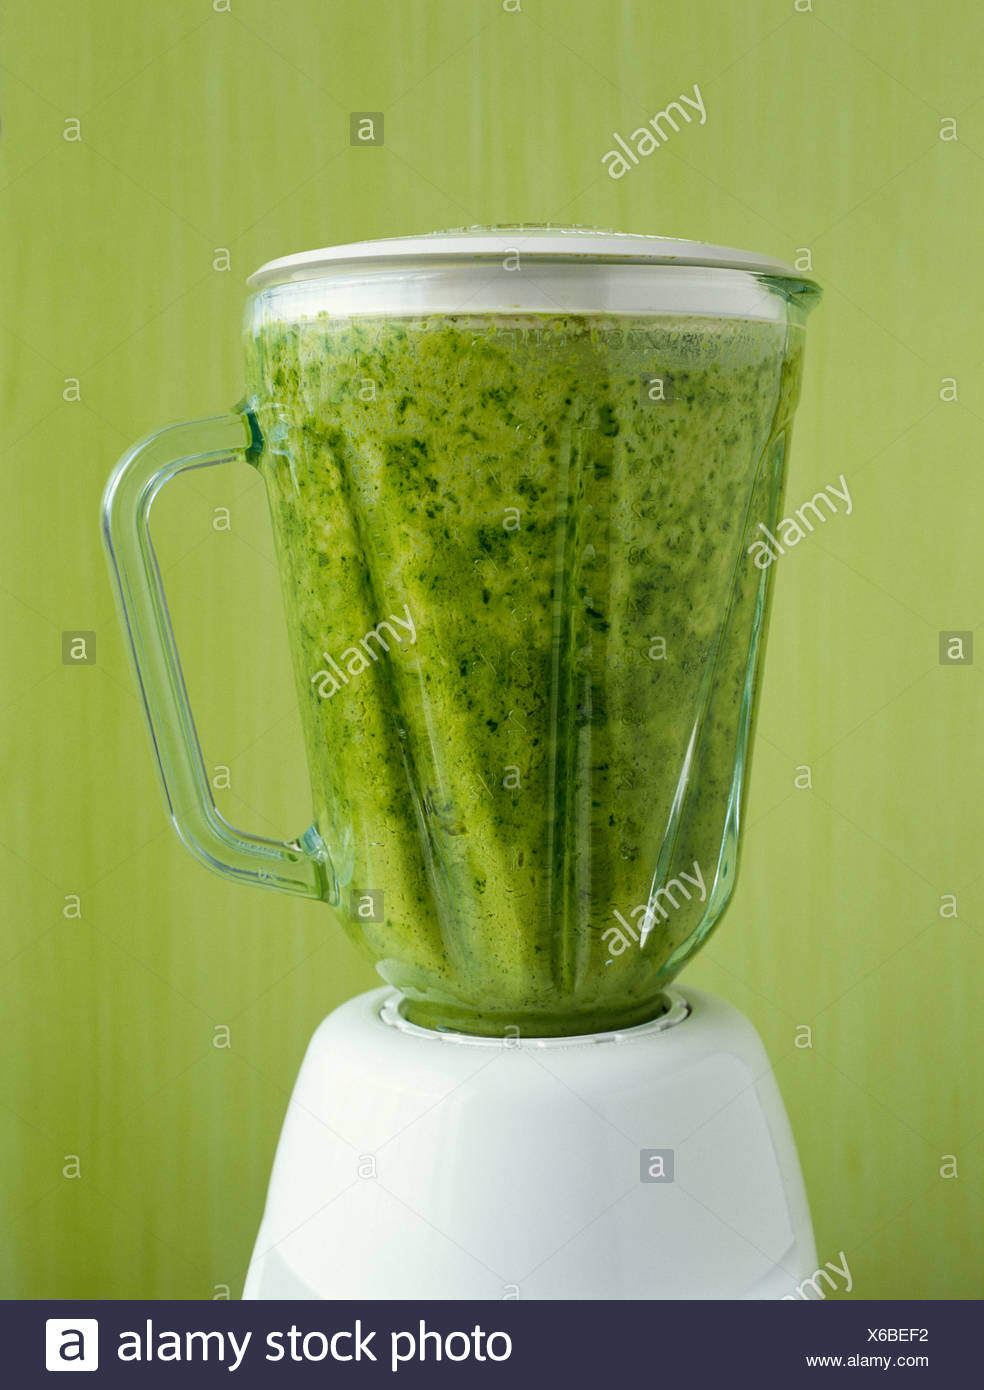 Mixing the herb soup in the blender Stock Photo